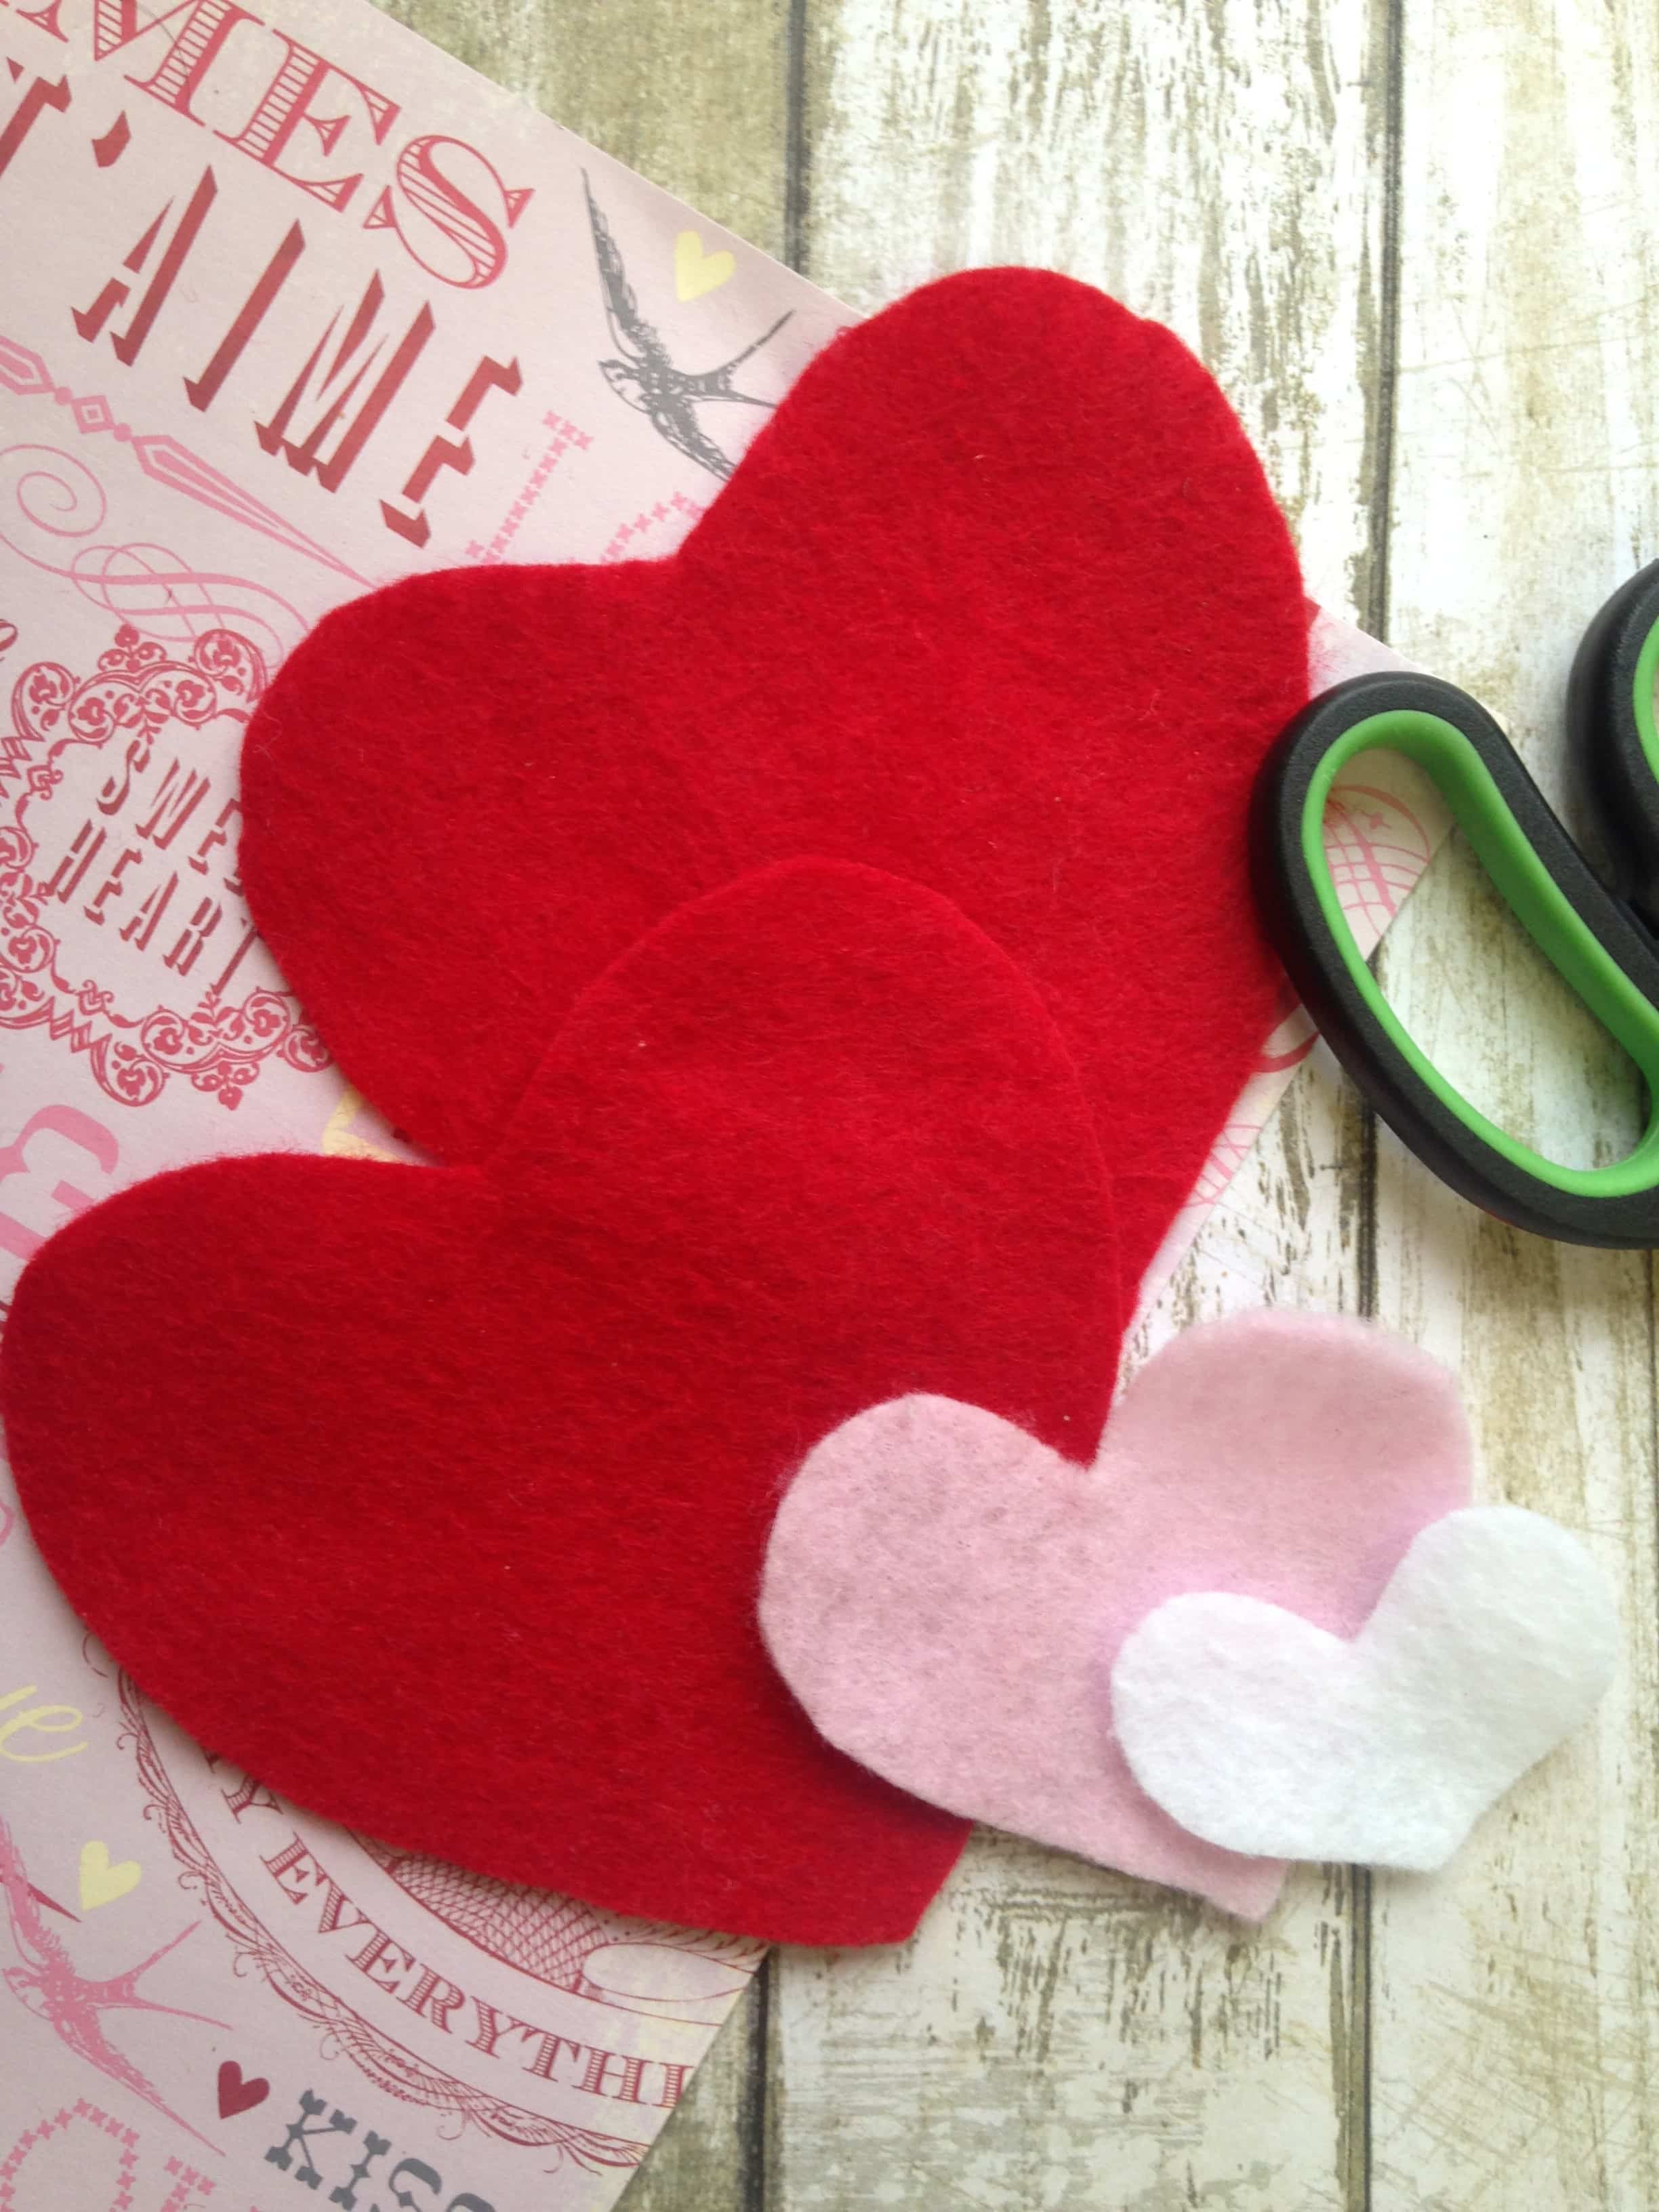 Cut felt hearts from 3 different colors of felt to make this essential oil scented Felt Heart Sachet